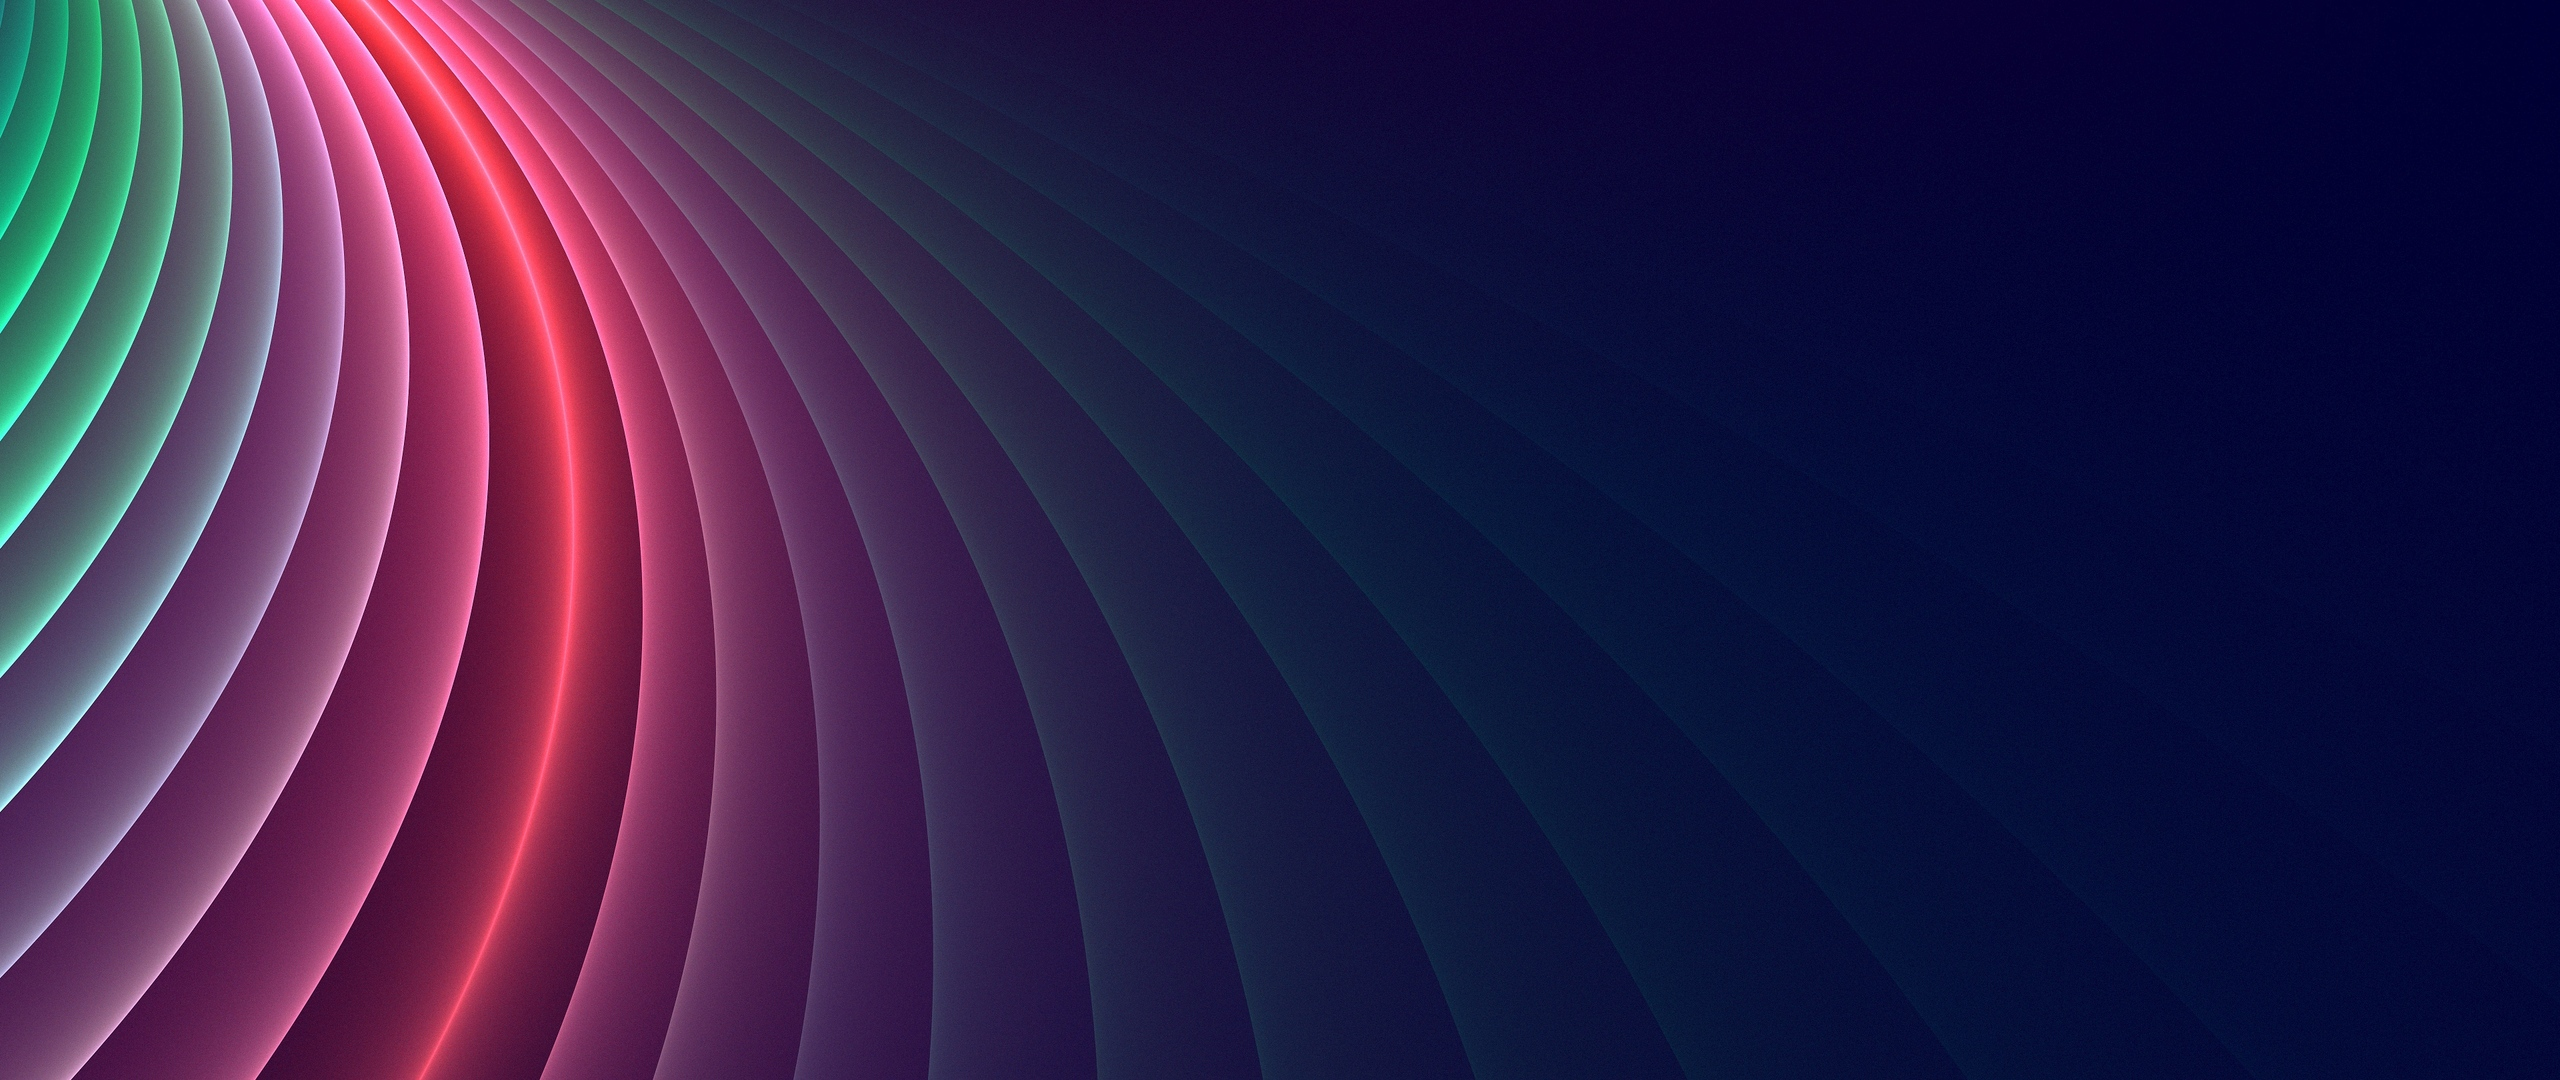 abstract-colorful-curved-glowing-4k-nb.jpg